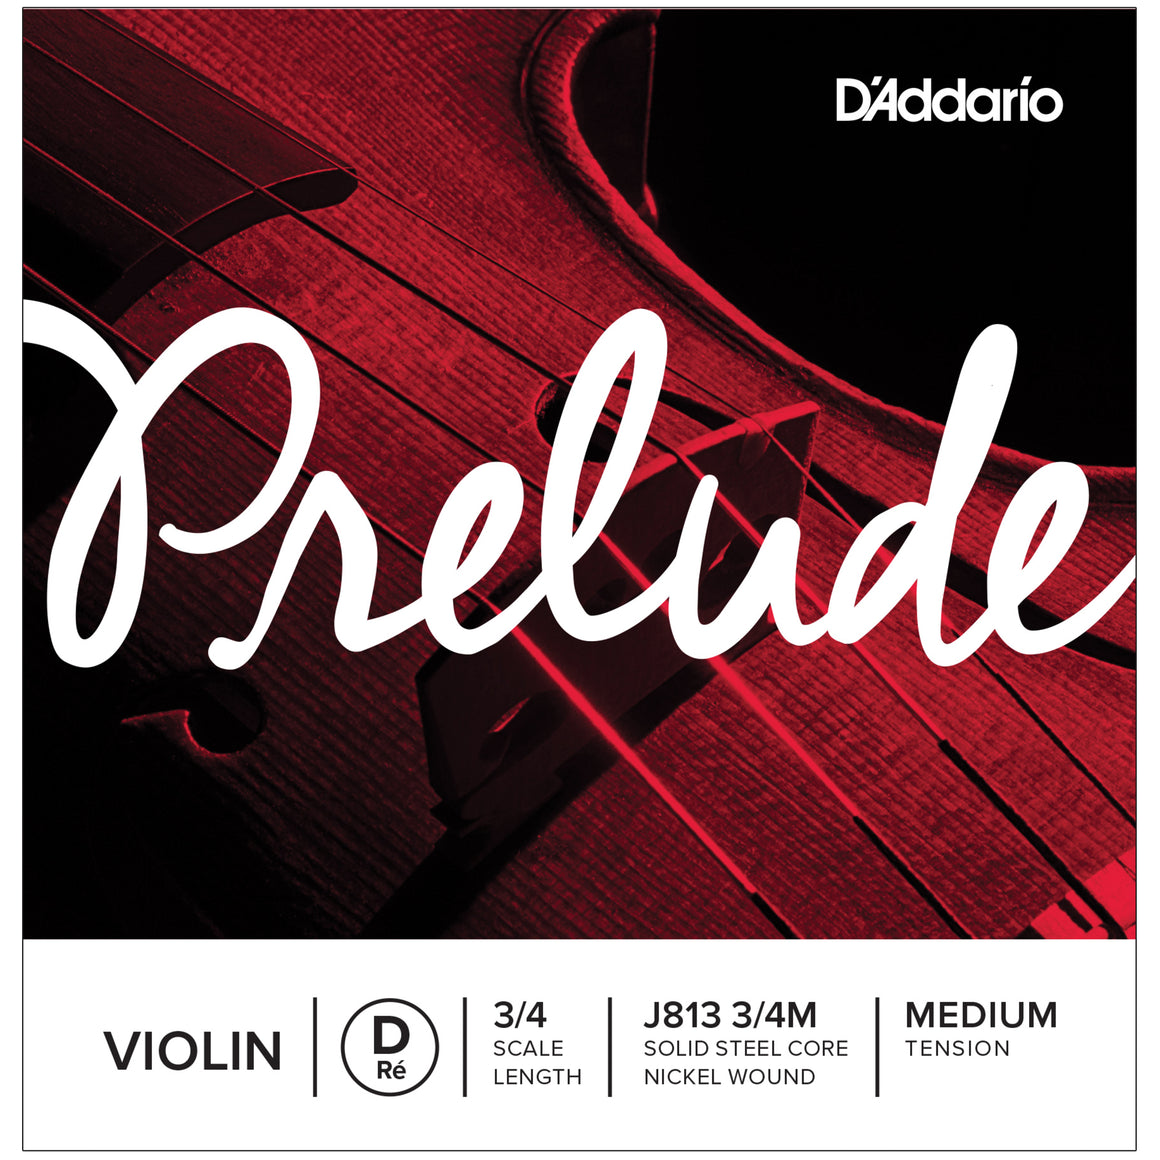 D'Addario Prelude 3/4 D Violin Single String Medium J813